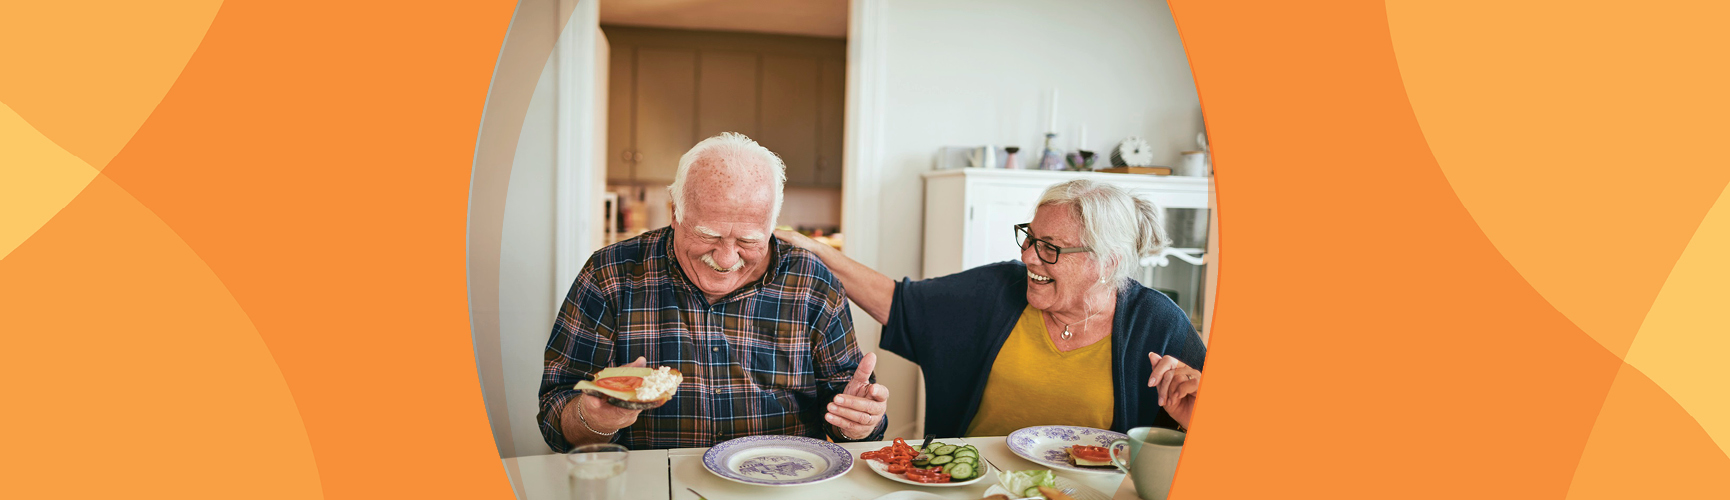 Man and woman sitting and eating at a table while laughing